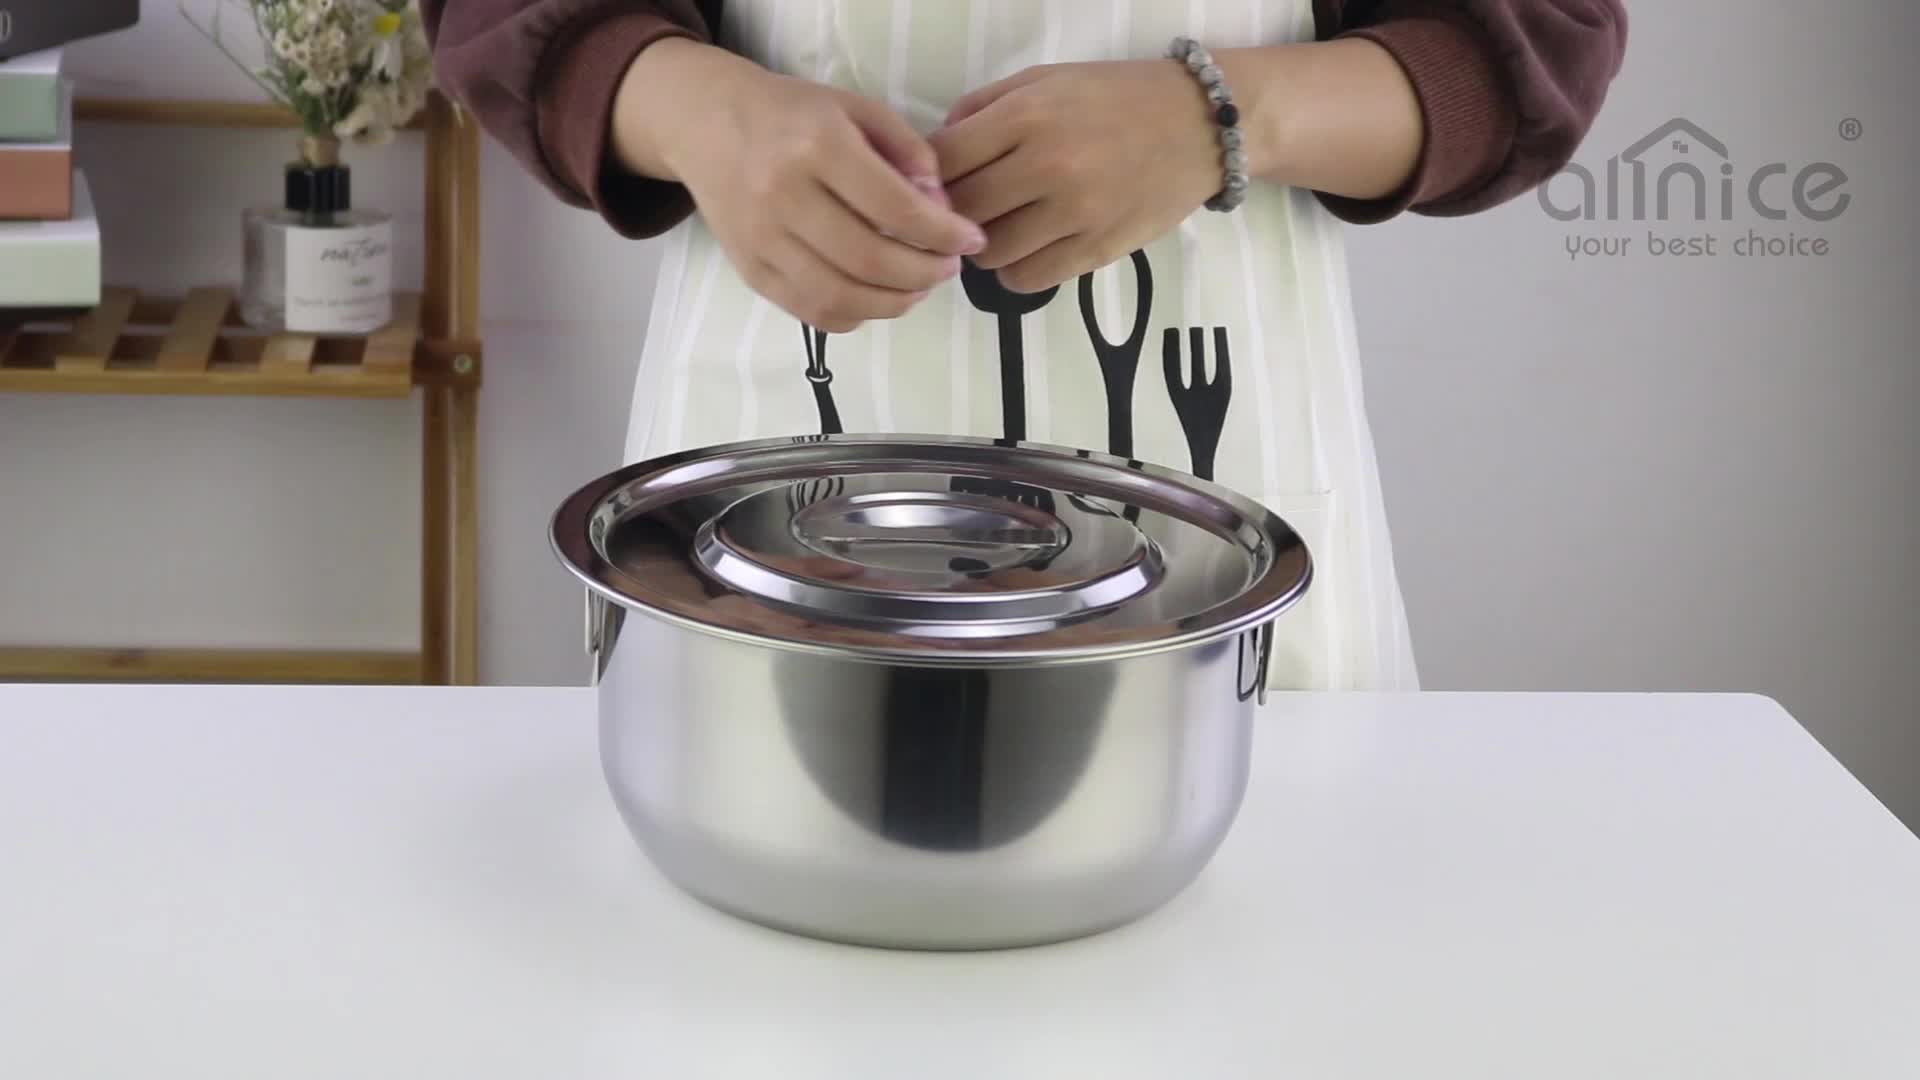 MY HOME Colored SS410 5pcs stainless steel stock pot stainless steel cooking pot